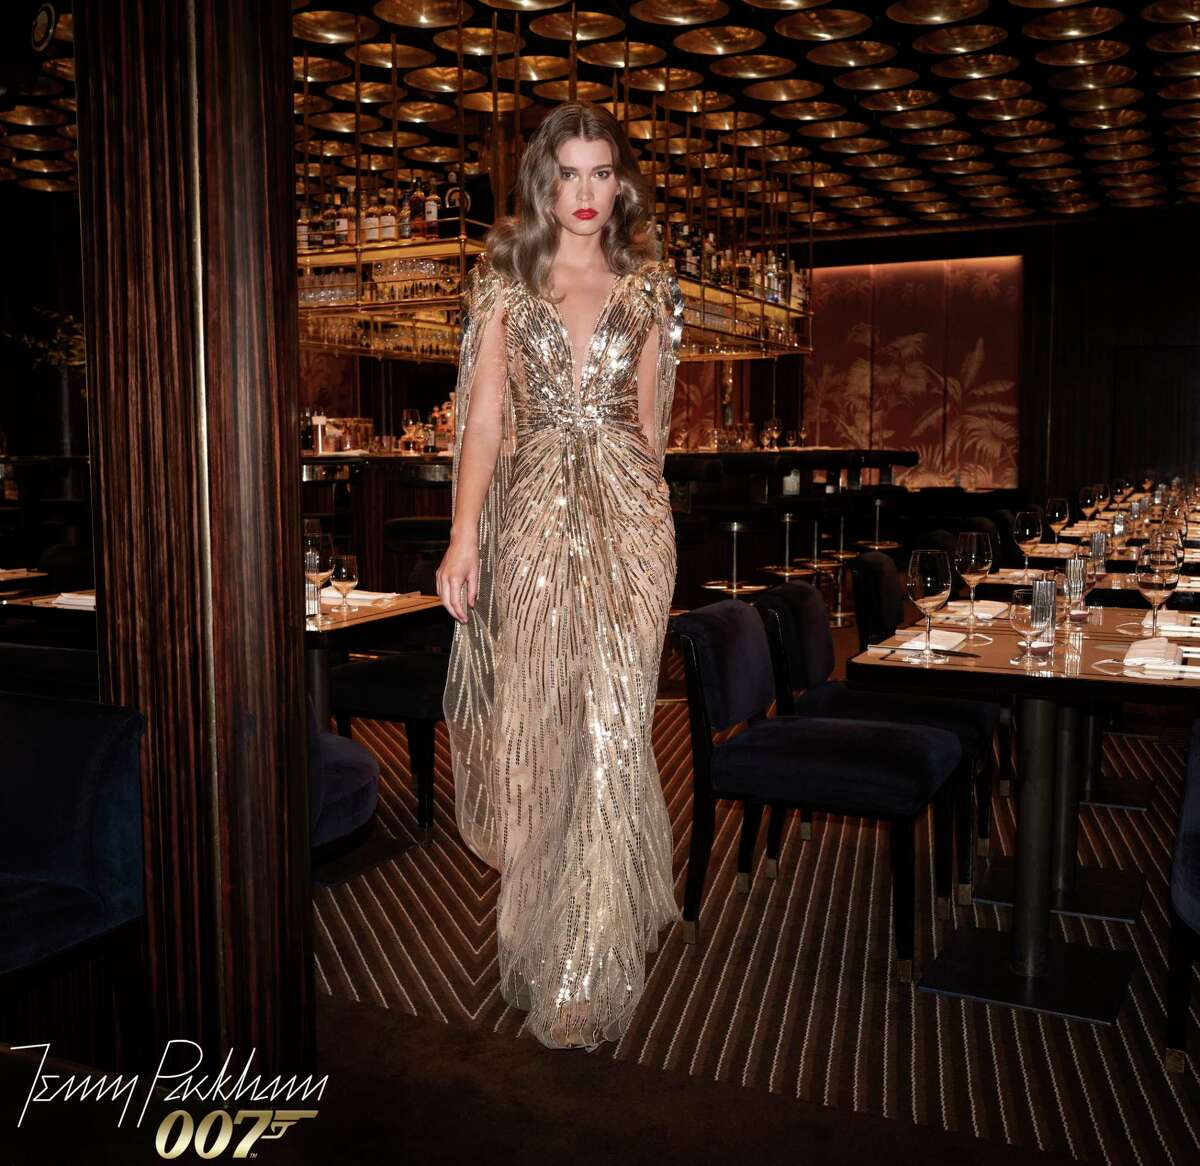 Jenny Packham collaborates with Eon Productions on at a collection of Bond girl evening wear.